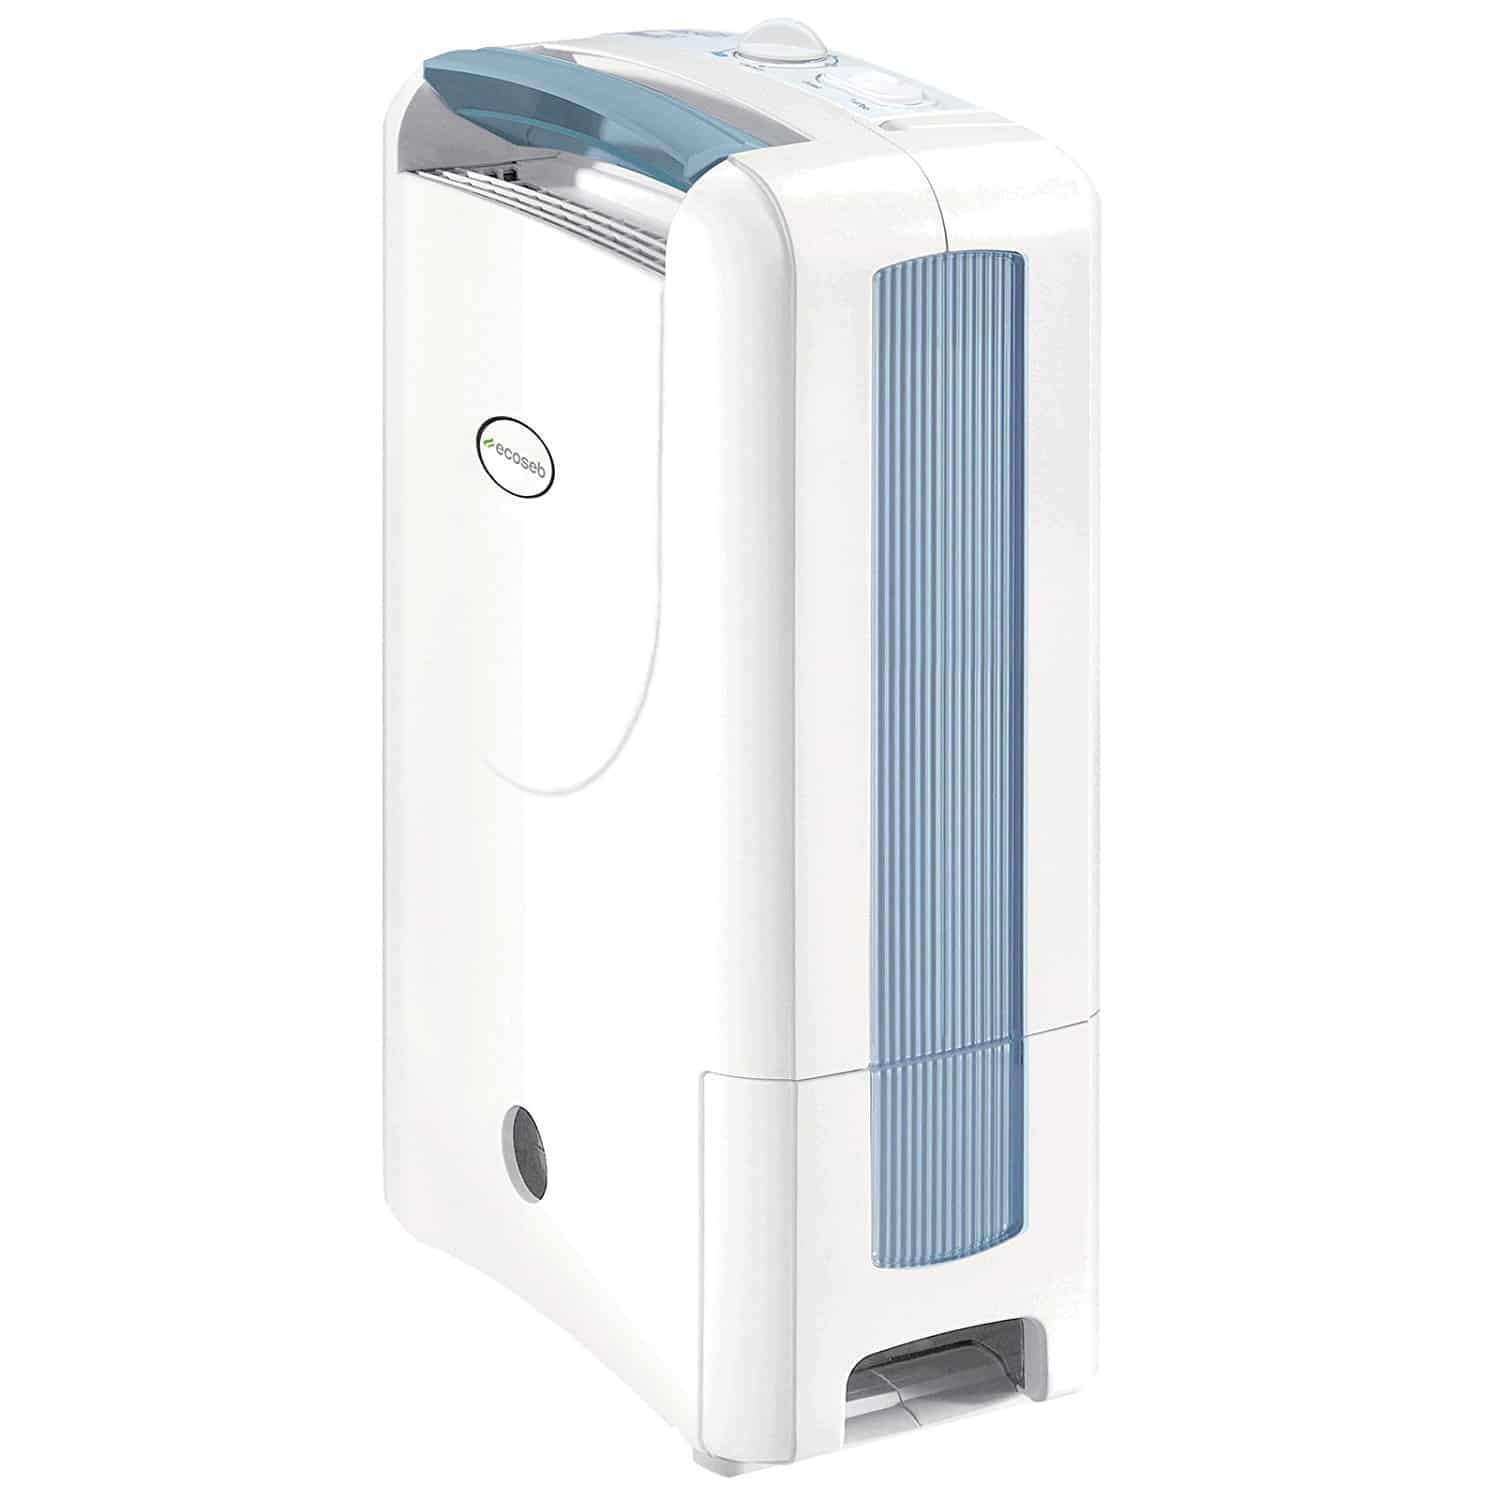 best desiccant dehumidifiers: This has to be the best desiccant dehumidifier out there!